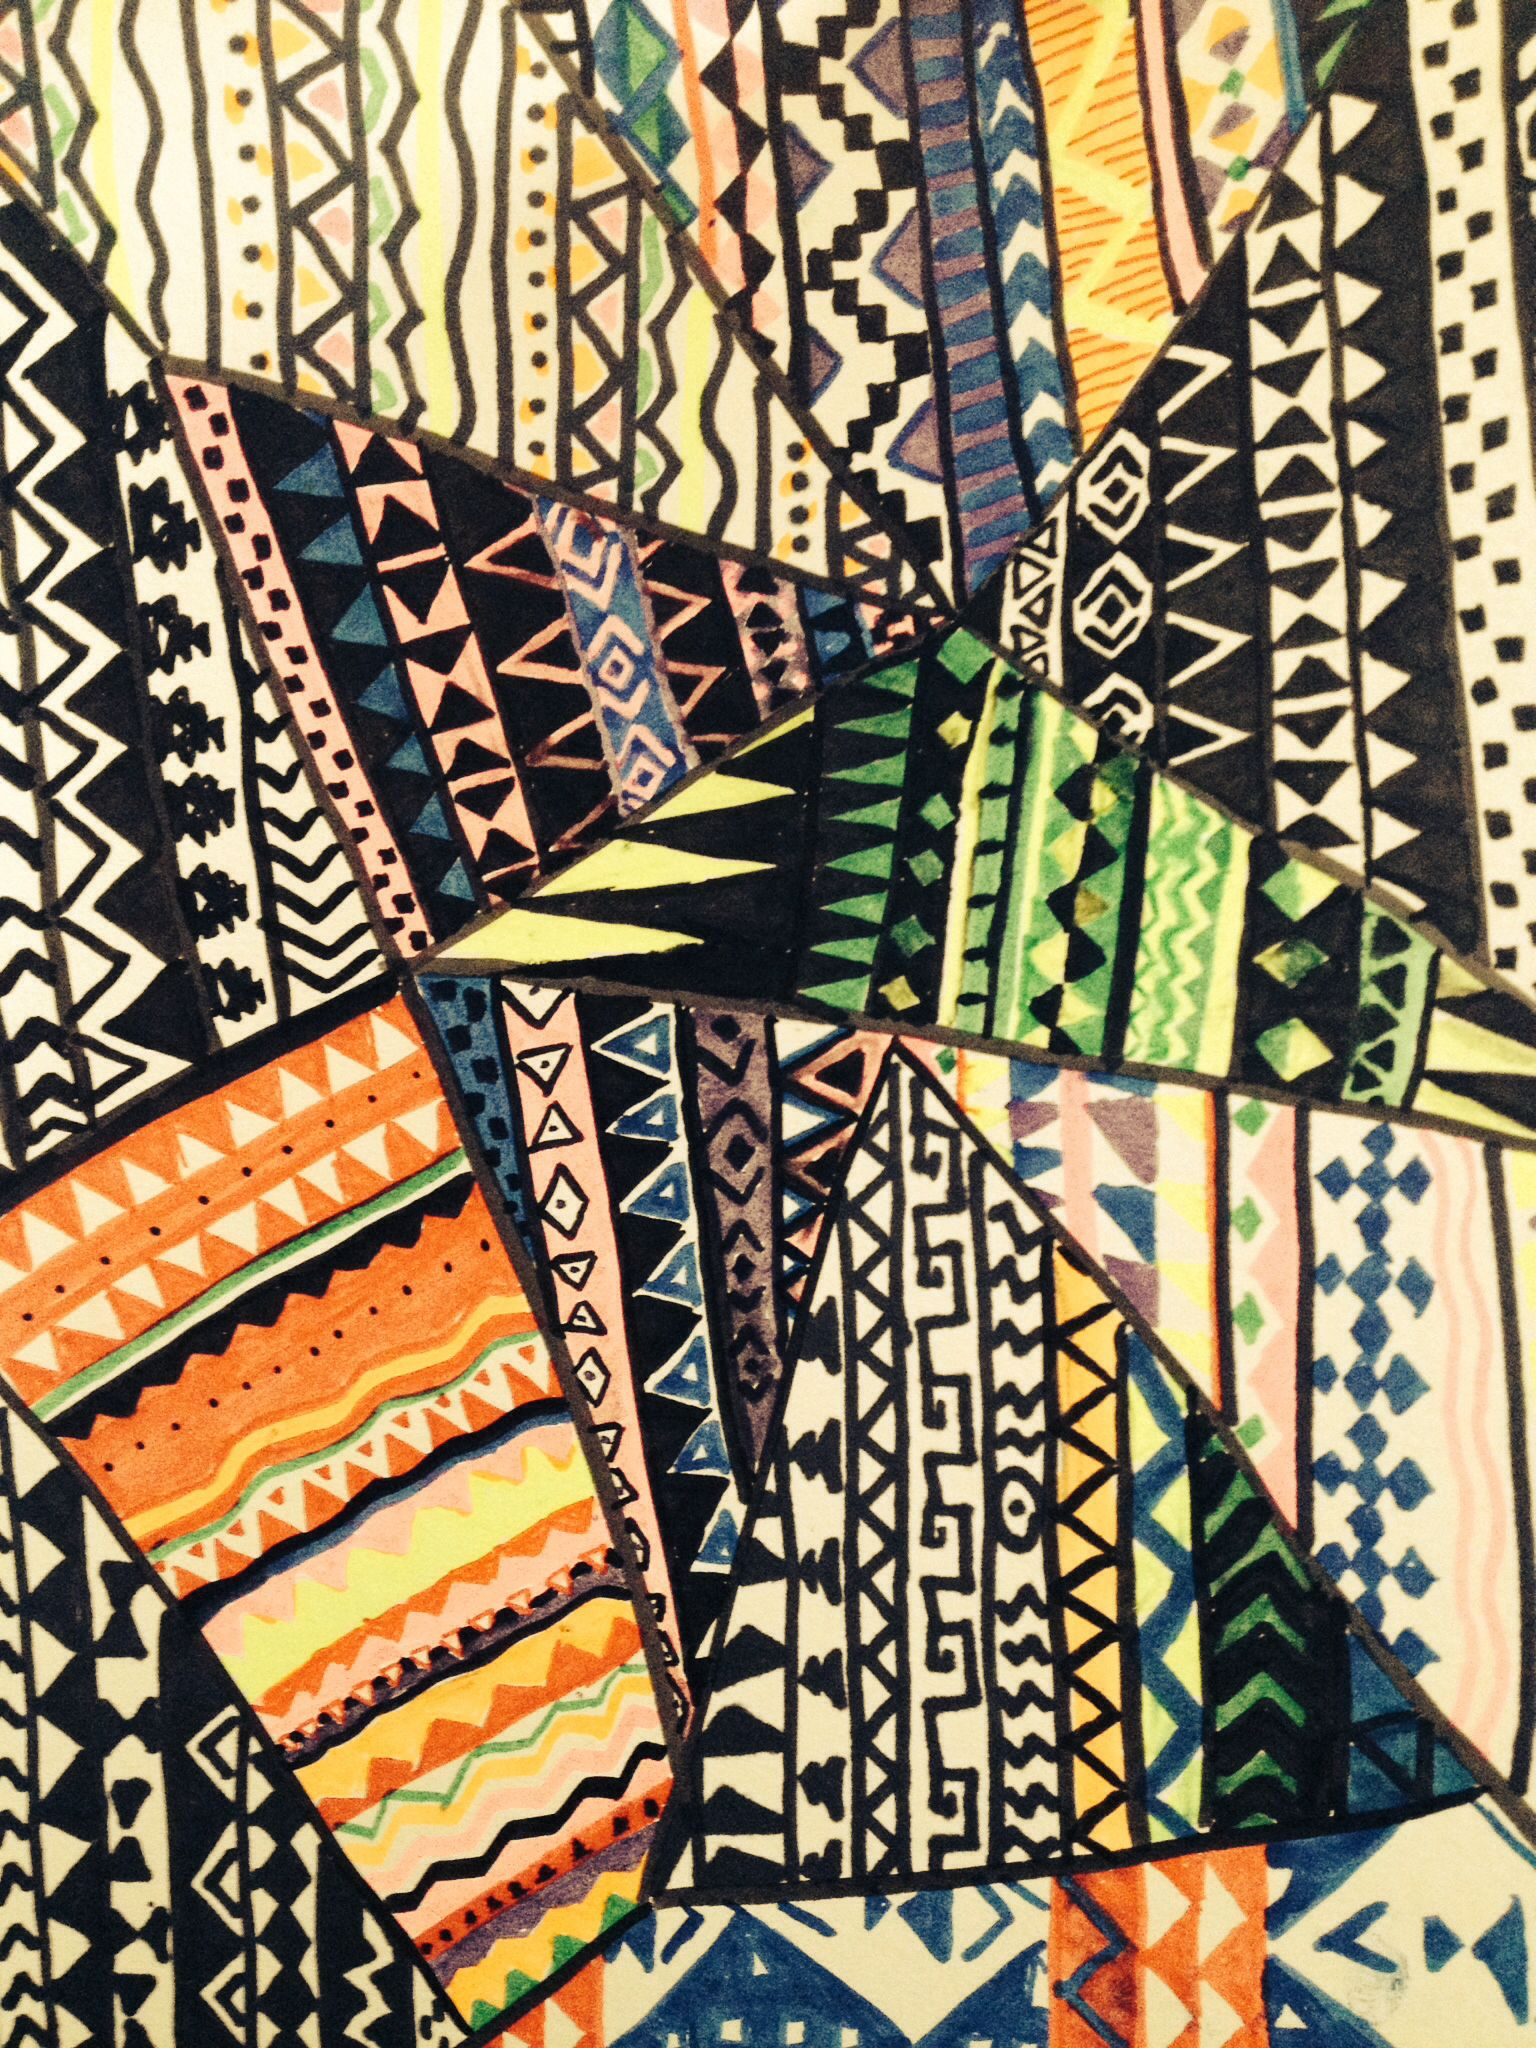 I'm obsessed with Aztec patterns!